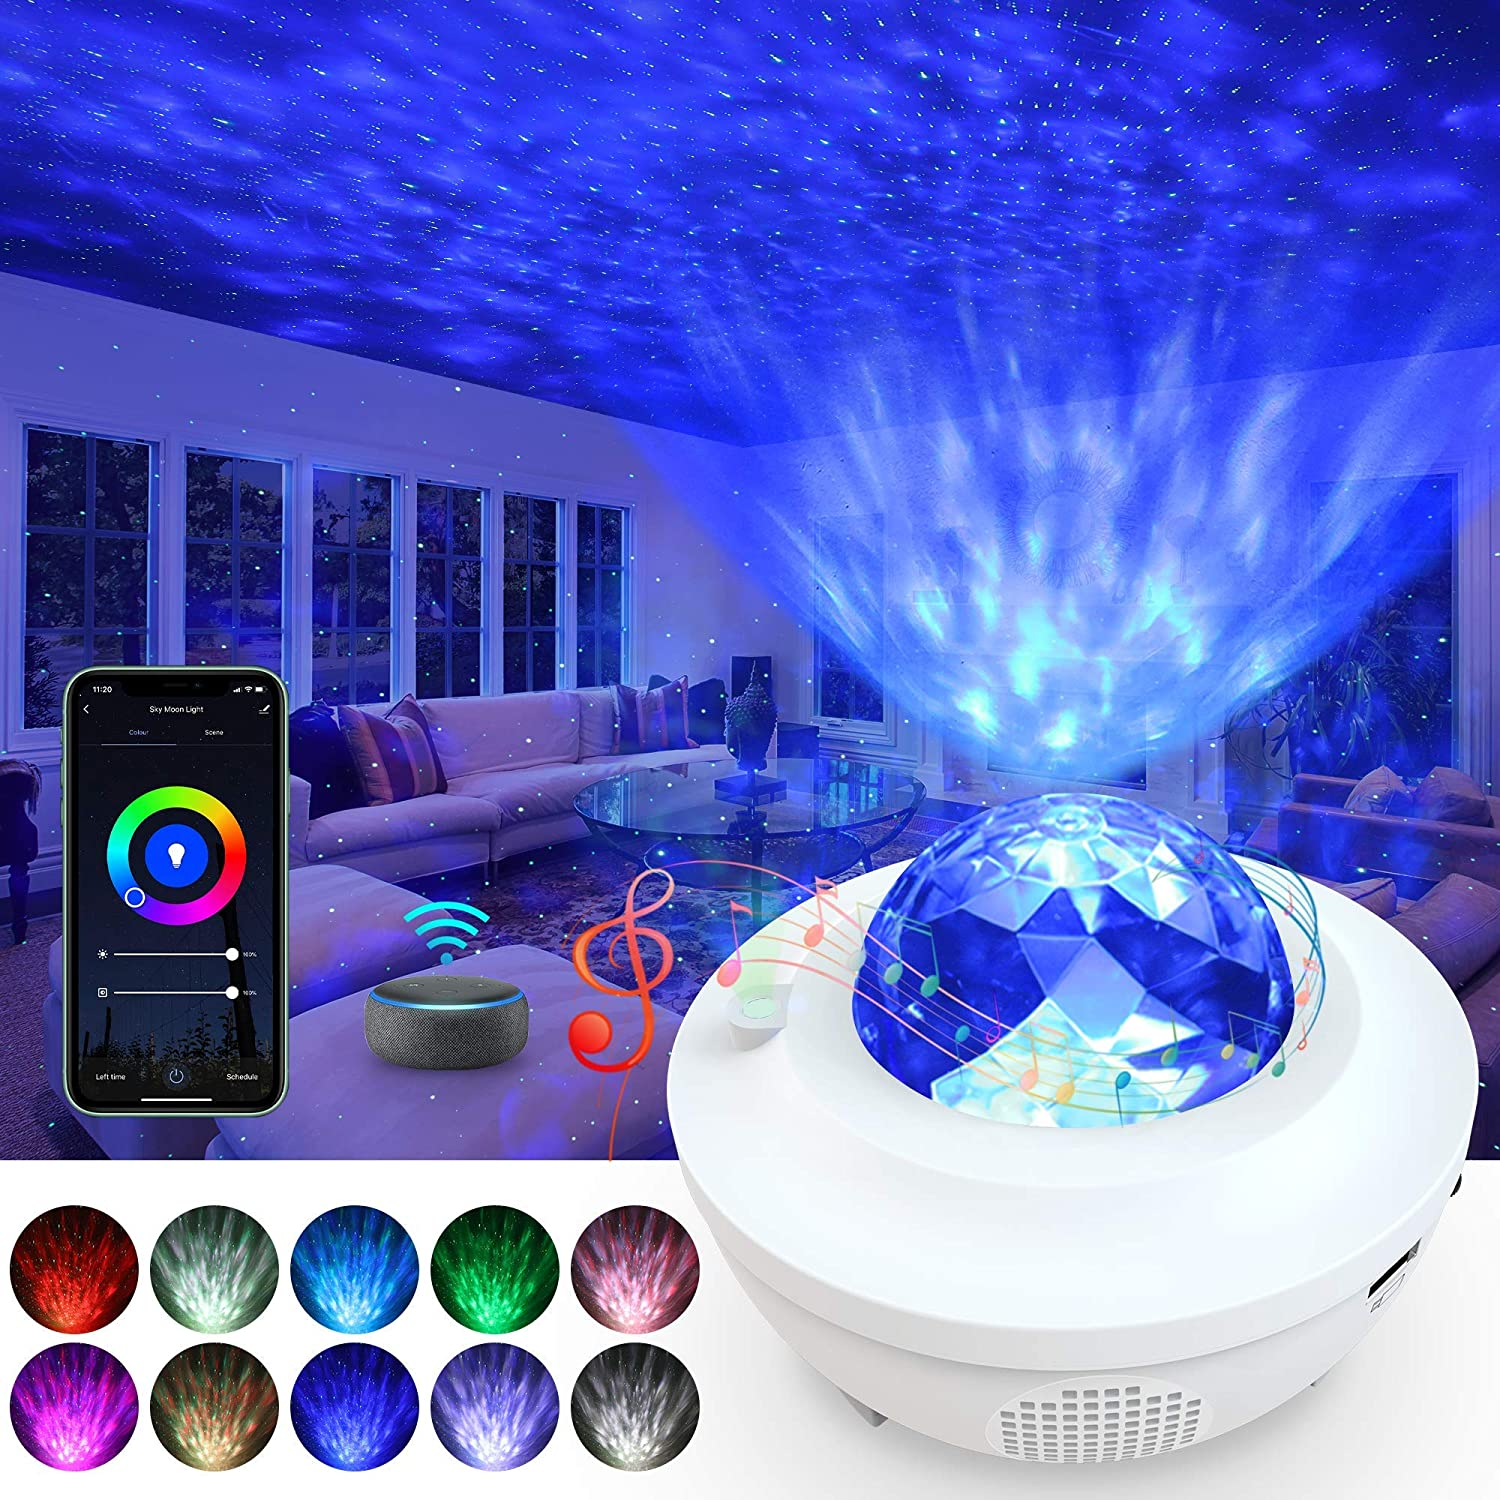 Star Projector, Yamla Smart Galaxy Light Projector Work With Alexa Google Assistant, Ocean Wave Night Light Projector With App Remote Control Bluetooth Speaker, Sky lite for Kids Adults Bedroom Party